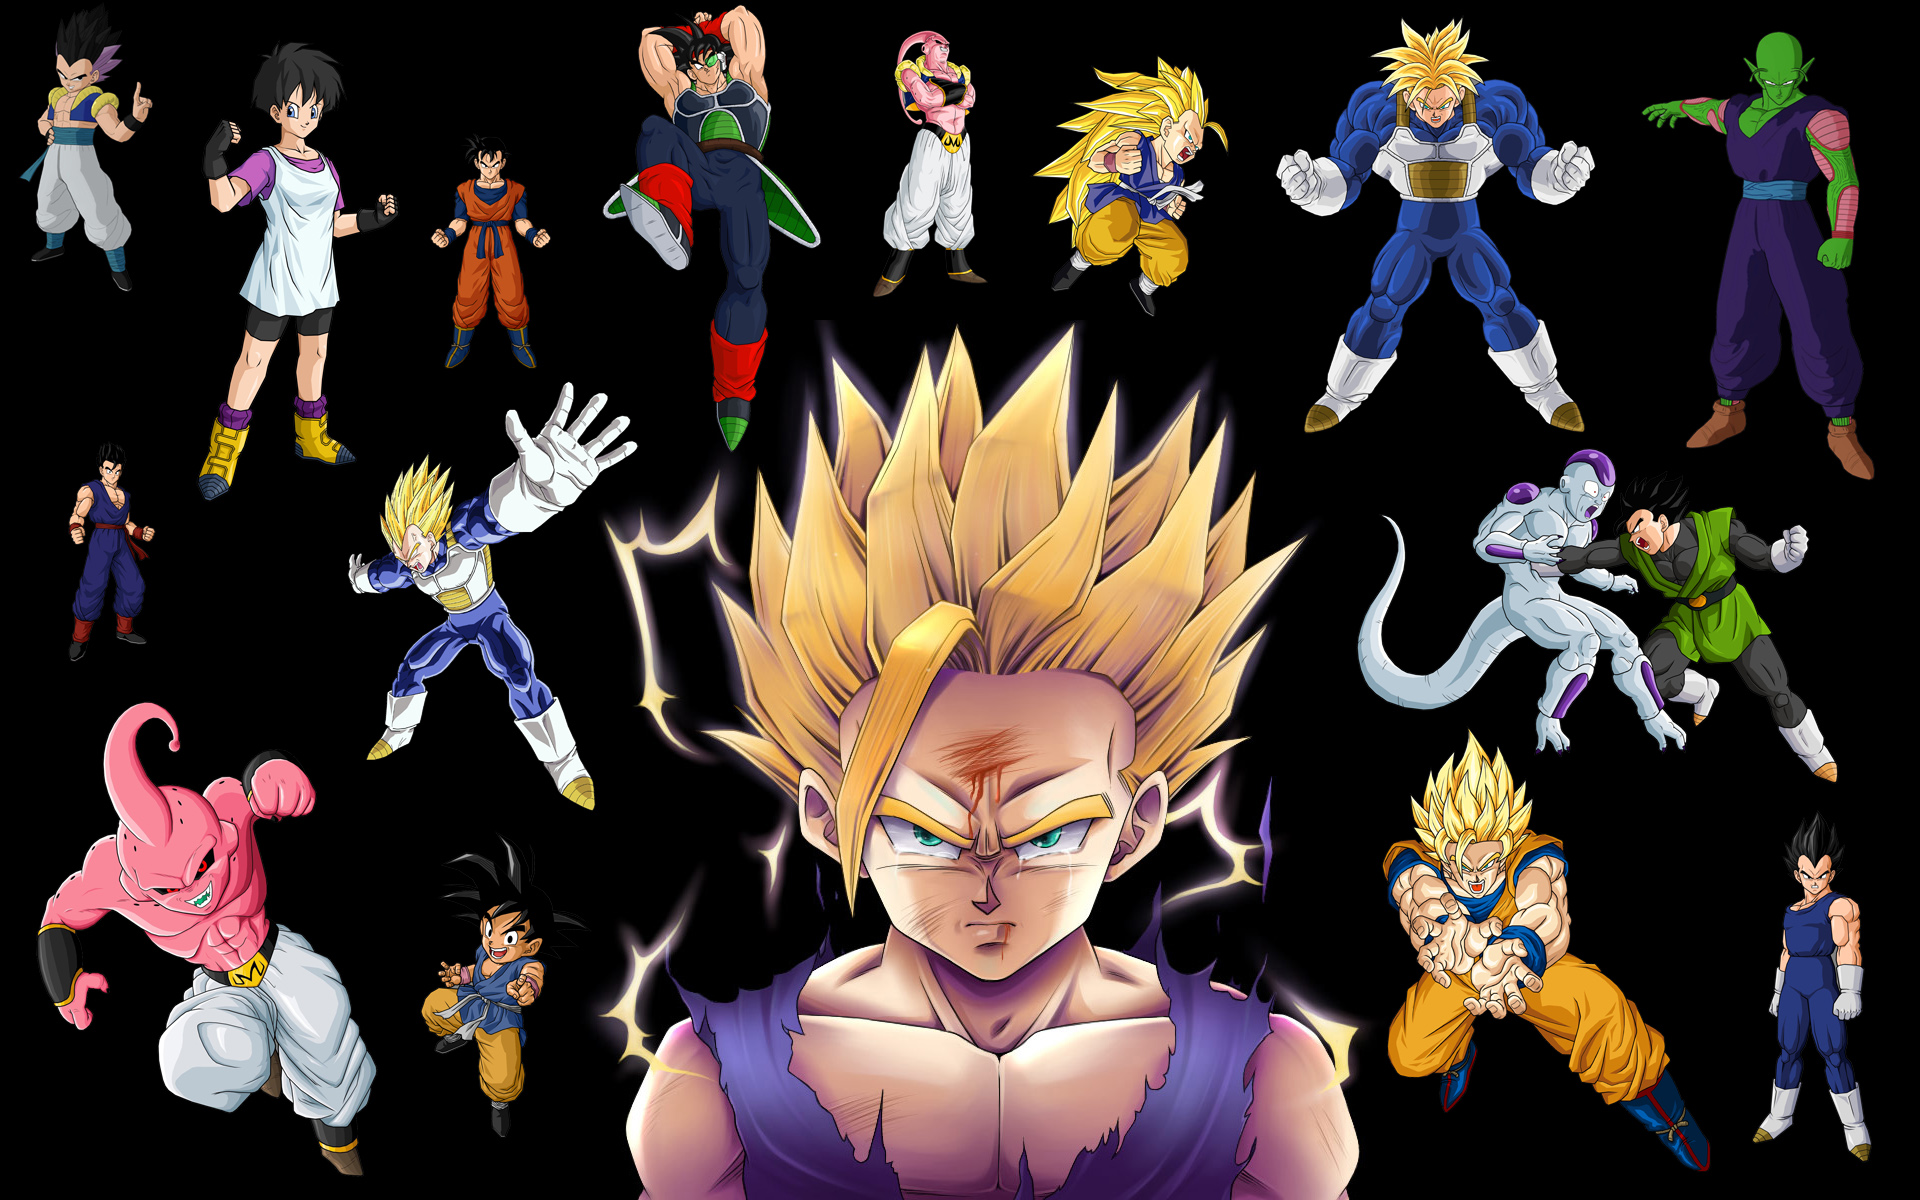 Vegeta Buu Son Goku Frieza Videl Dragon Ball Son Gohan